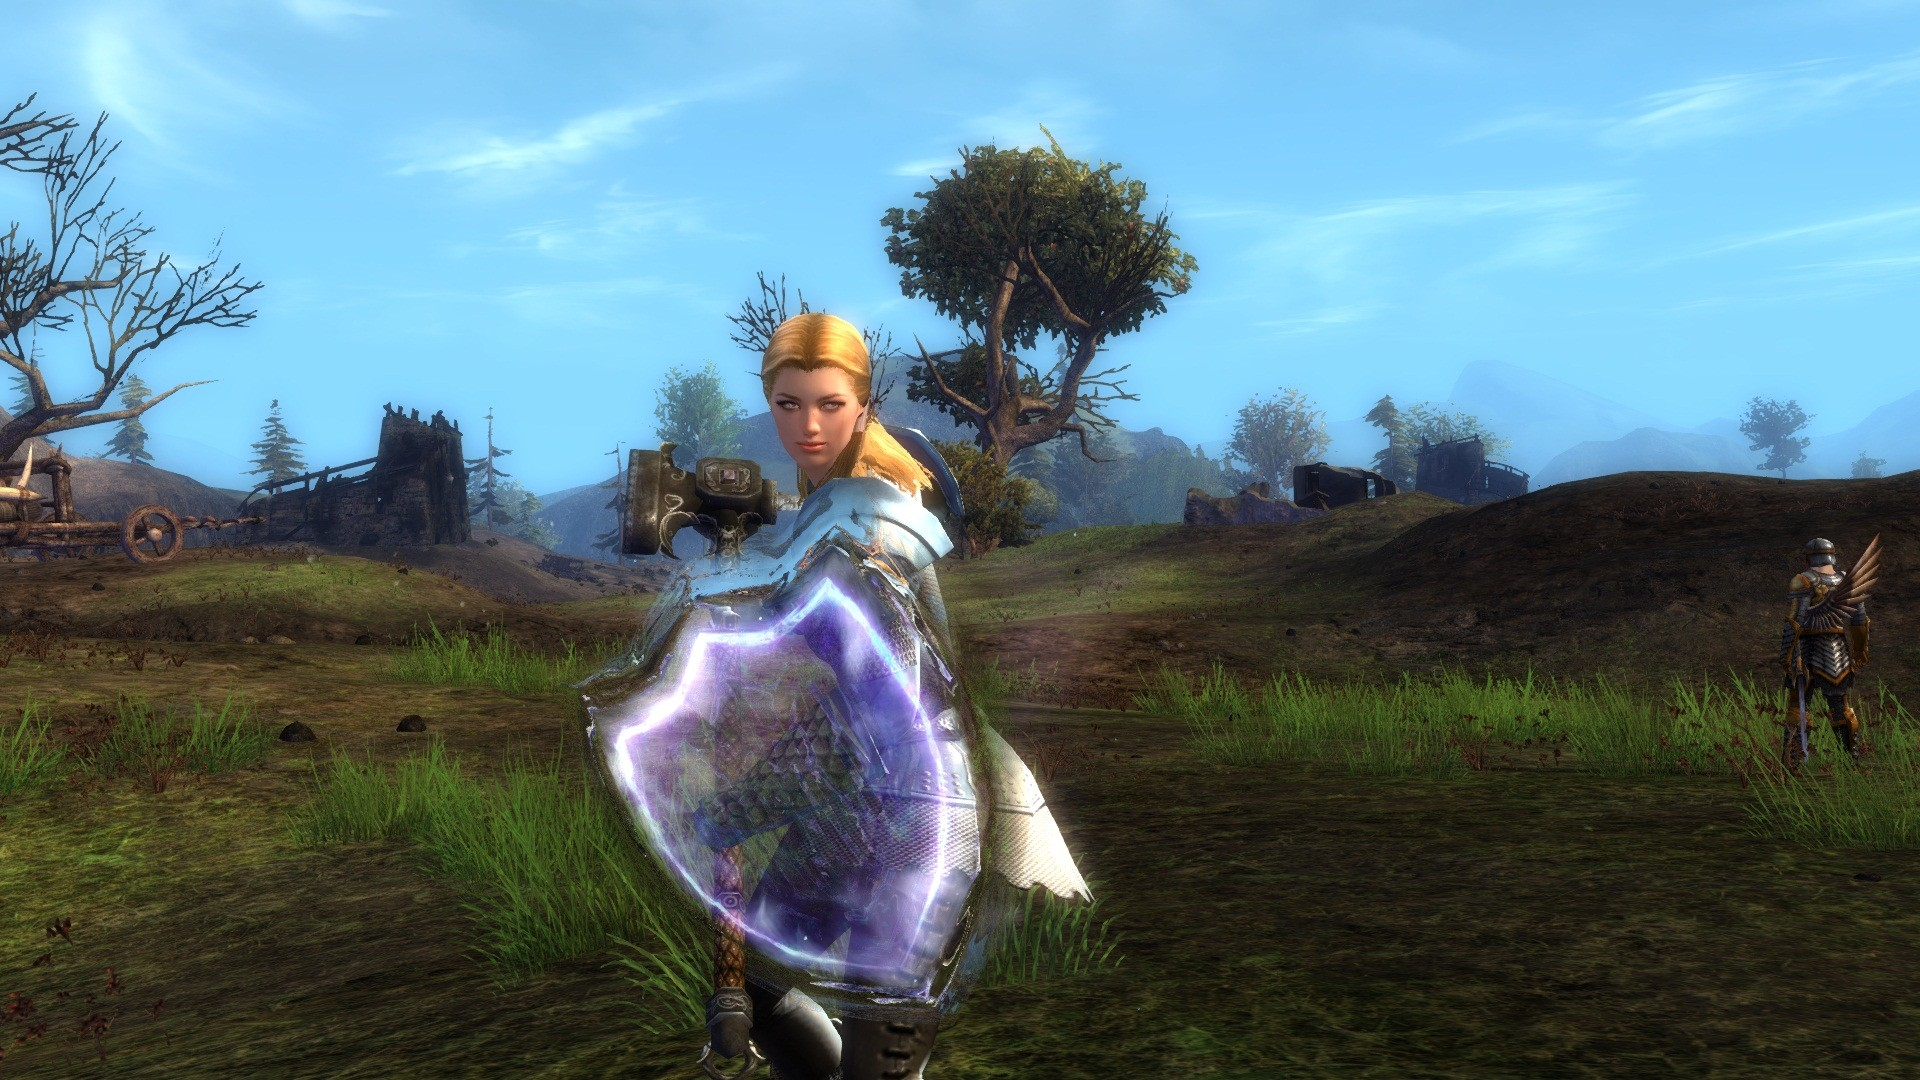 Guild Wars 2 - A Guardian Hunting Centaurs